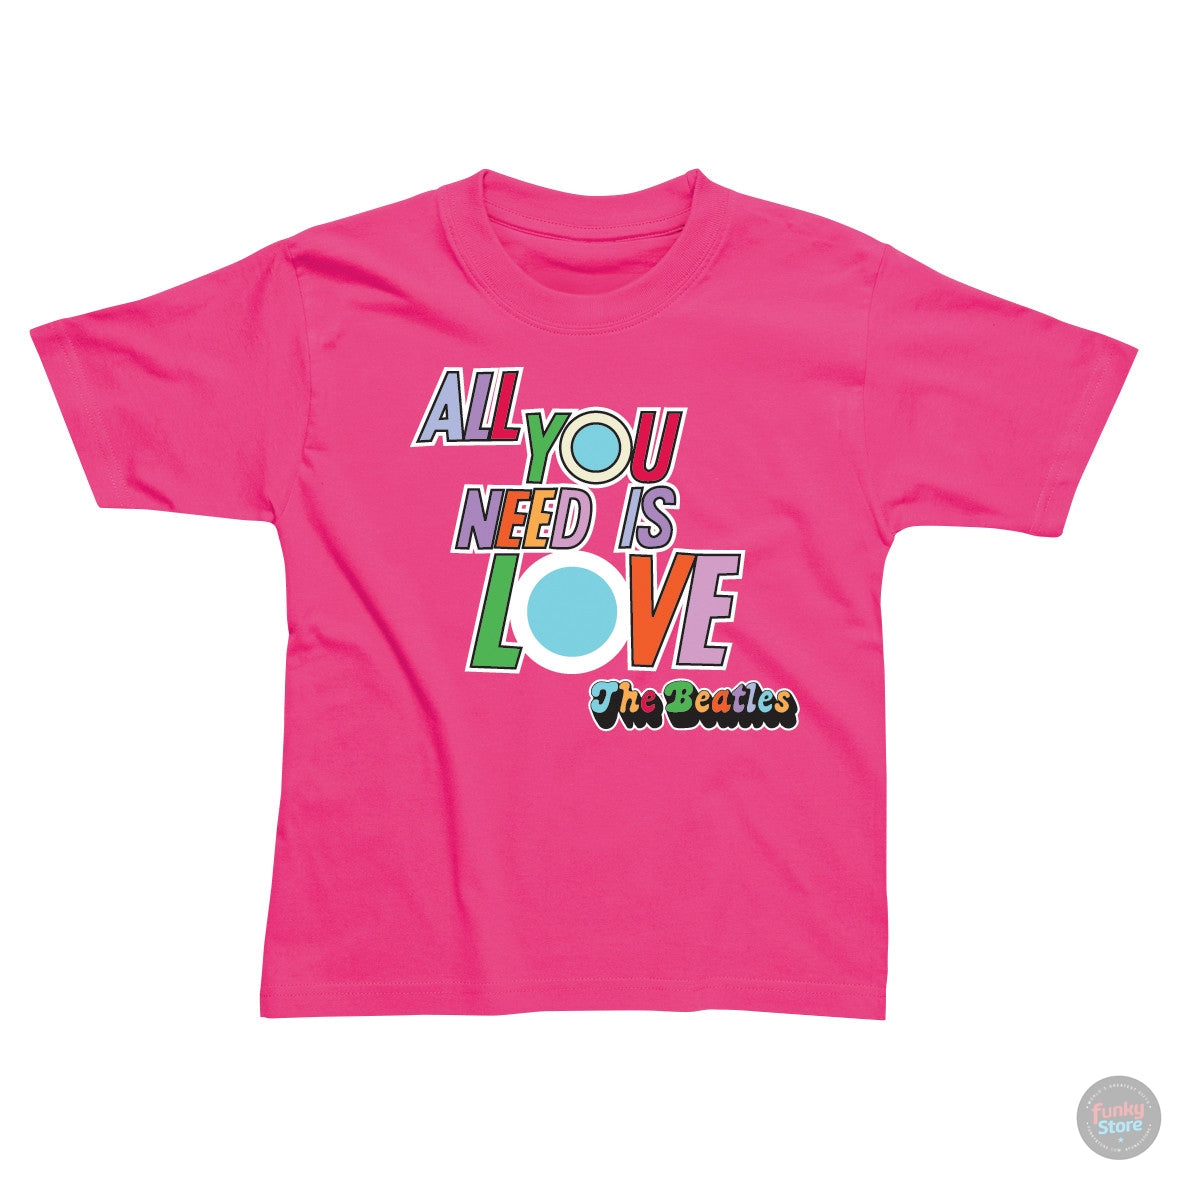 2d71c91fa The Beatles - All You Need is Love - Cerise Pink T-Shirt – Funky Store